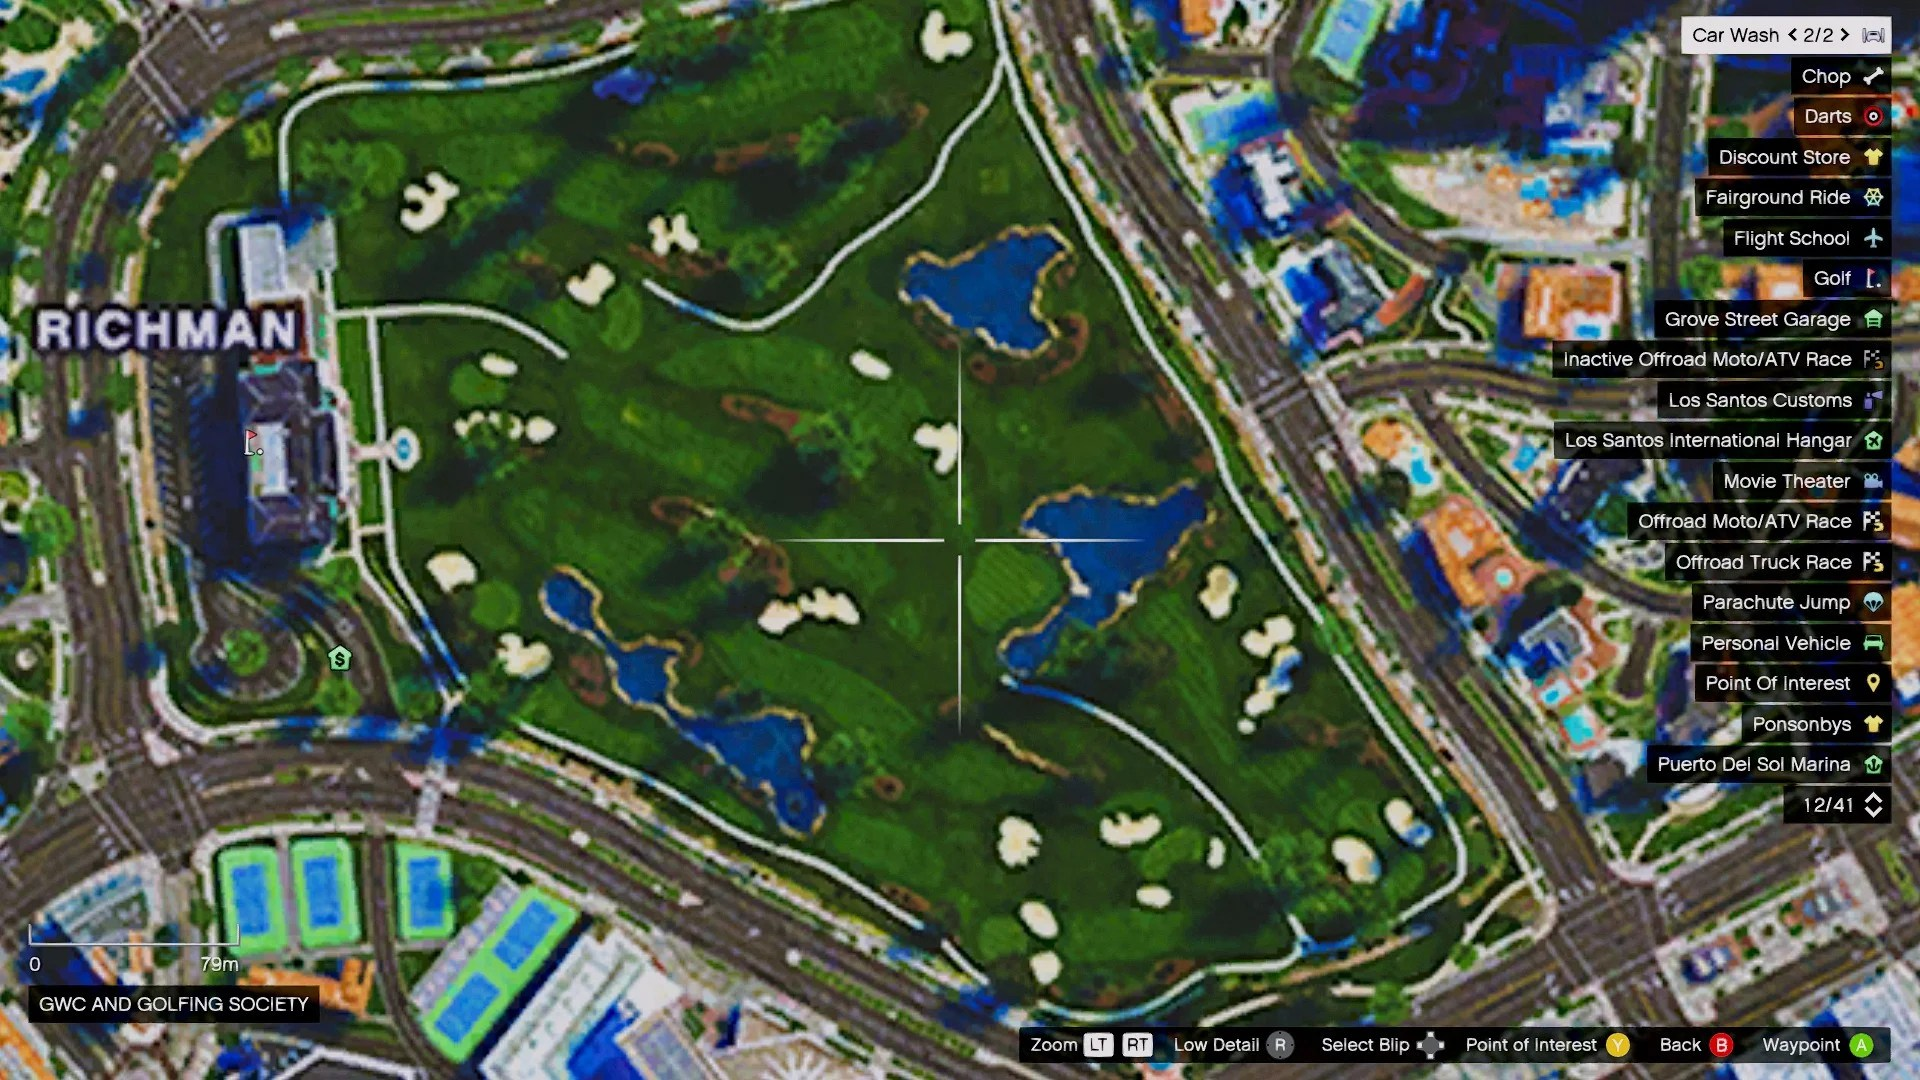 4K Satellite View Map bundled with radar mod   zoom script    GTA5     Eb3926 20171004175636 1